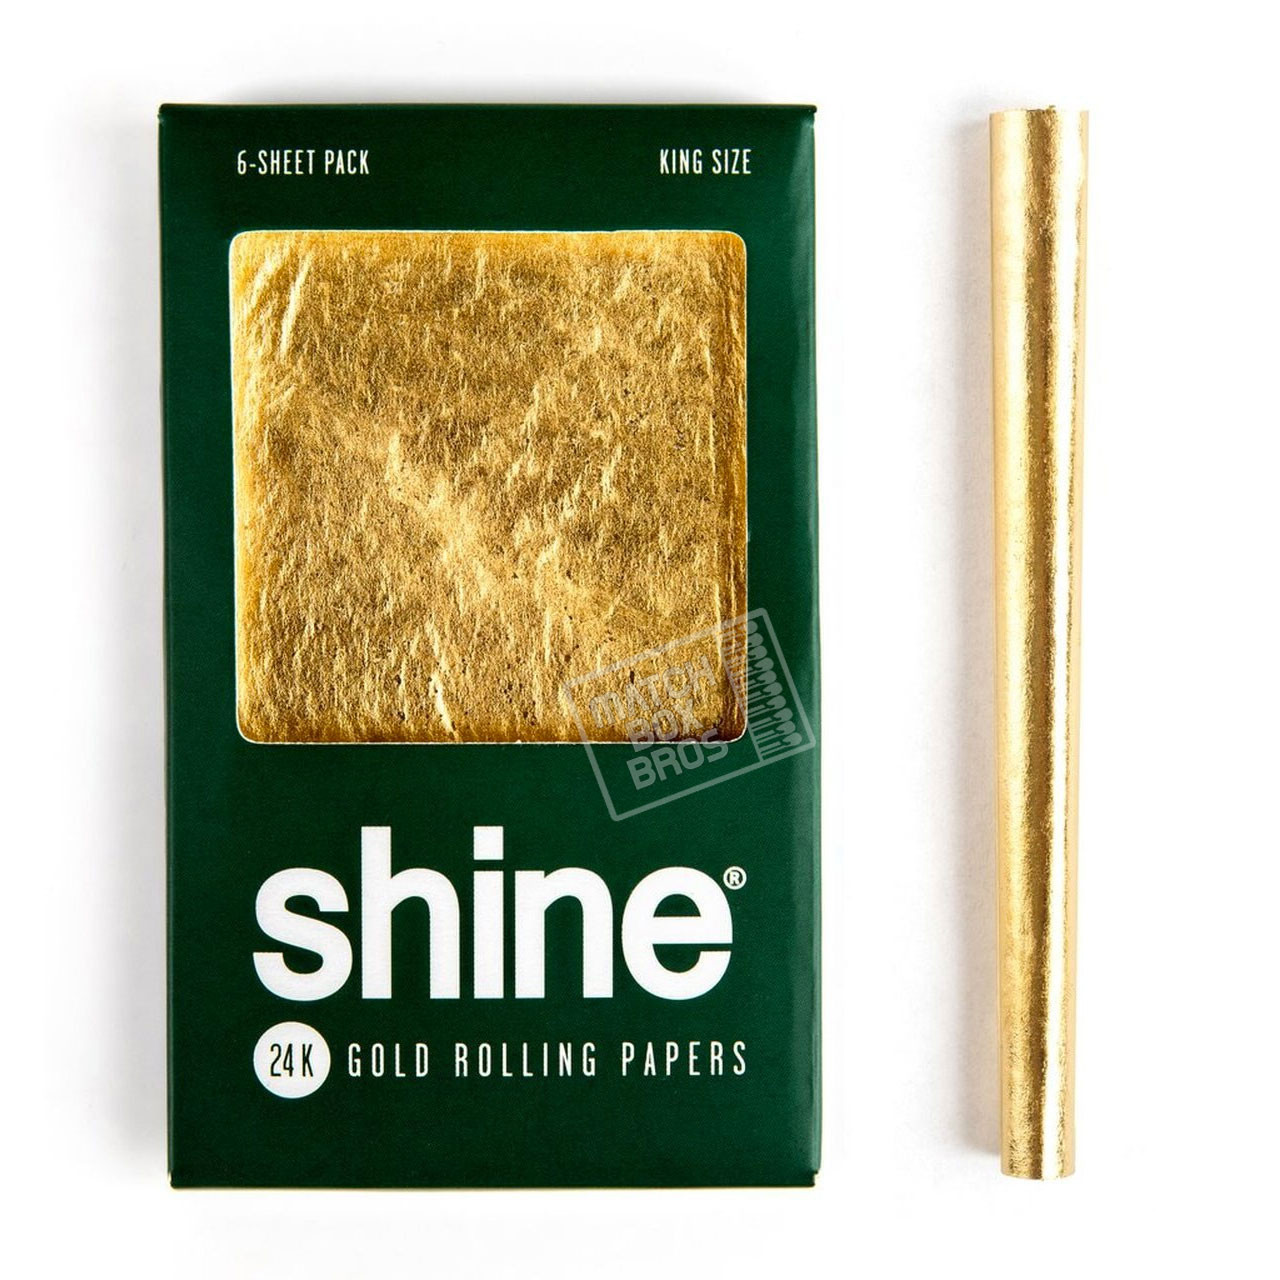 Shine 24k King Size 6-Sheet Pack 01